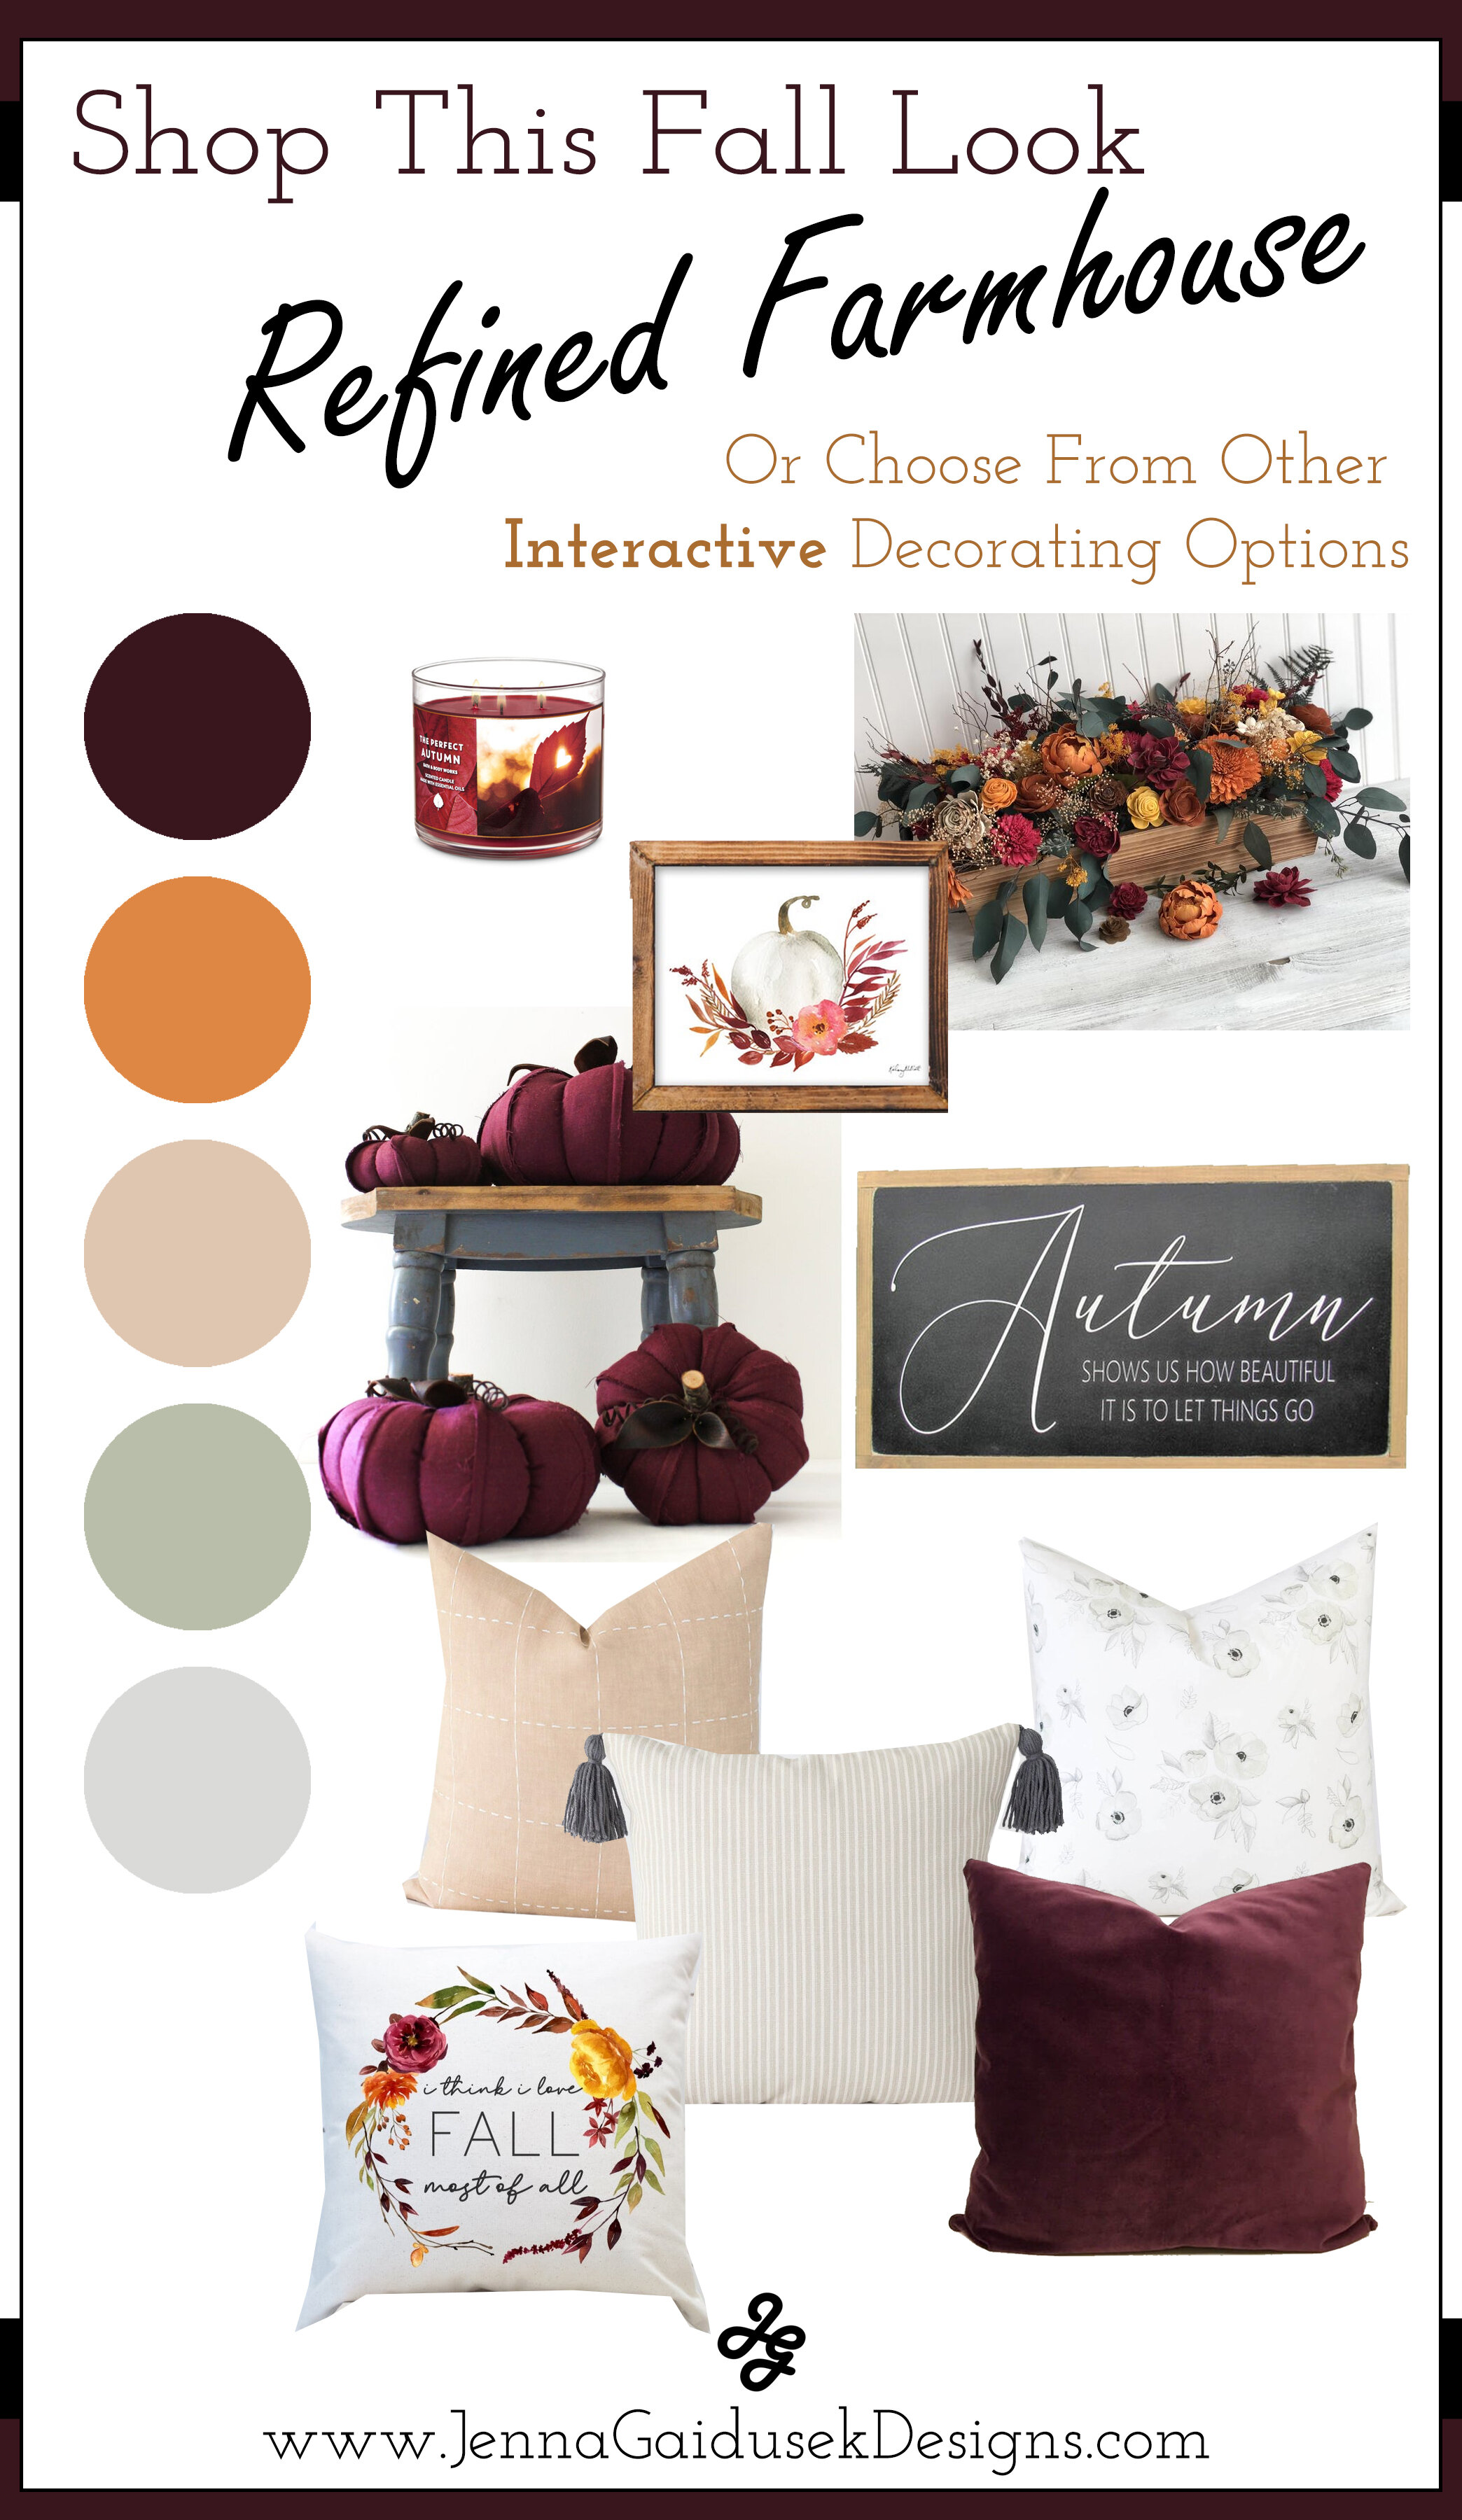 Plum Pin. Get your free fall decorating style guide! Shop the sophisticated refined farmhouse home decor based on your fall color scheme for this year. Add new pillows, fall wall decor, wood signs and more. All expertly designed by eDesigner, Jenna Gaidusek and sourced from Etsy small businesses. Get ready for entertaining your family and friends this Thanksgiving and Christmas season with these fresh fall decor styles! #modernfarmhouse #falldecor #decorateforfall #fallstyle